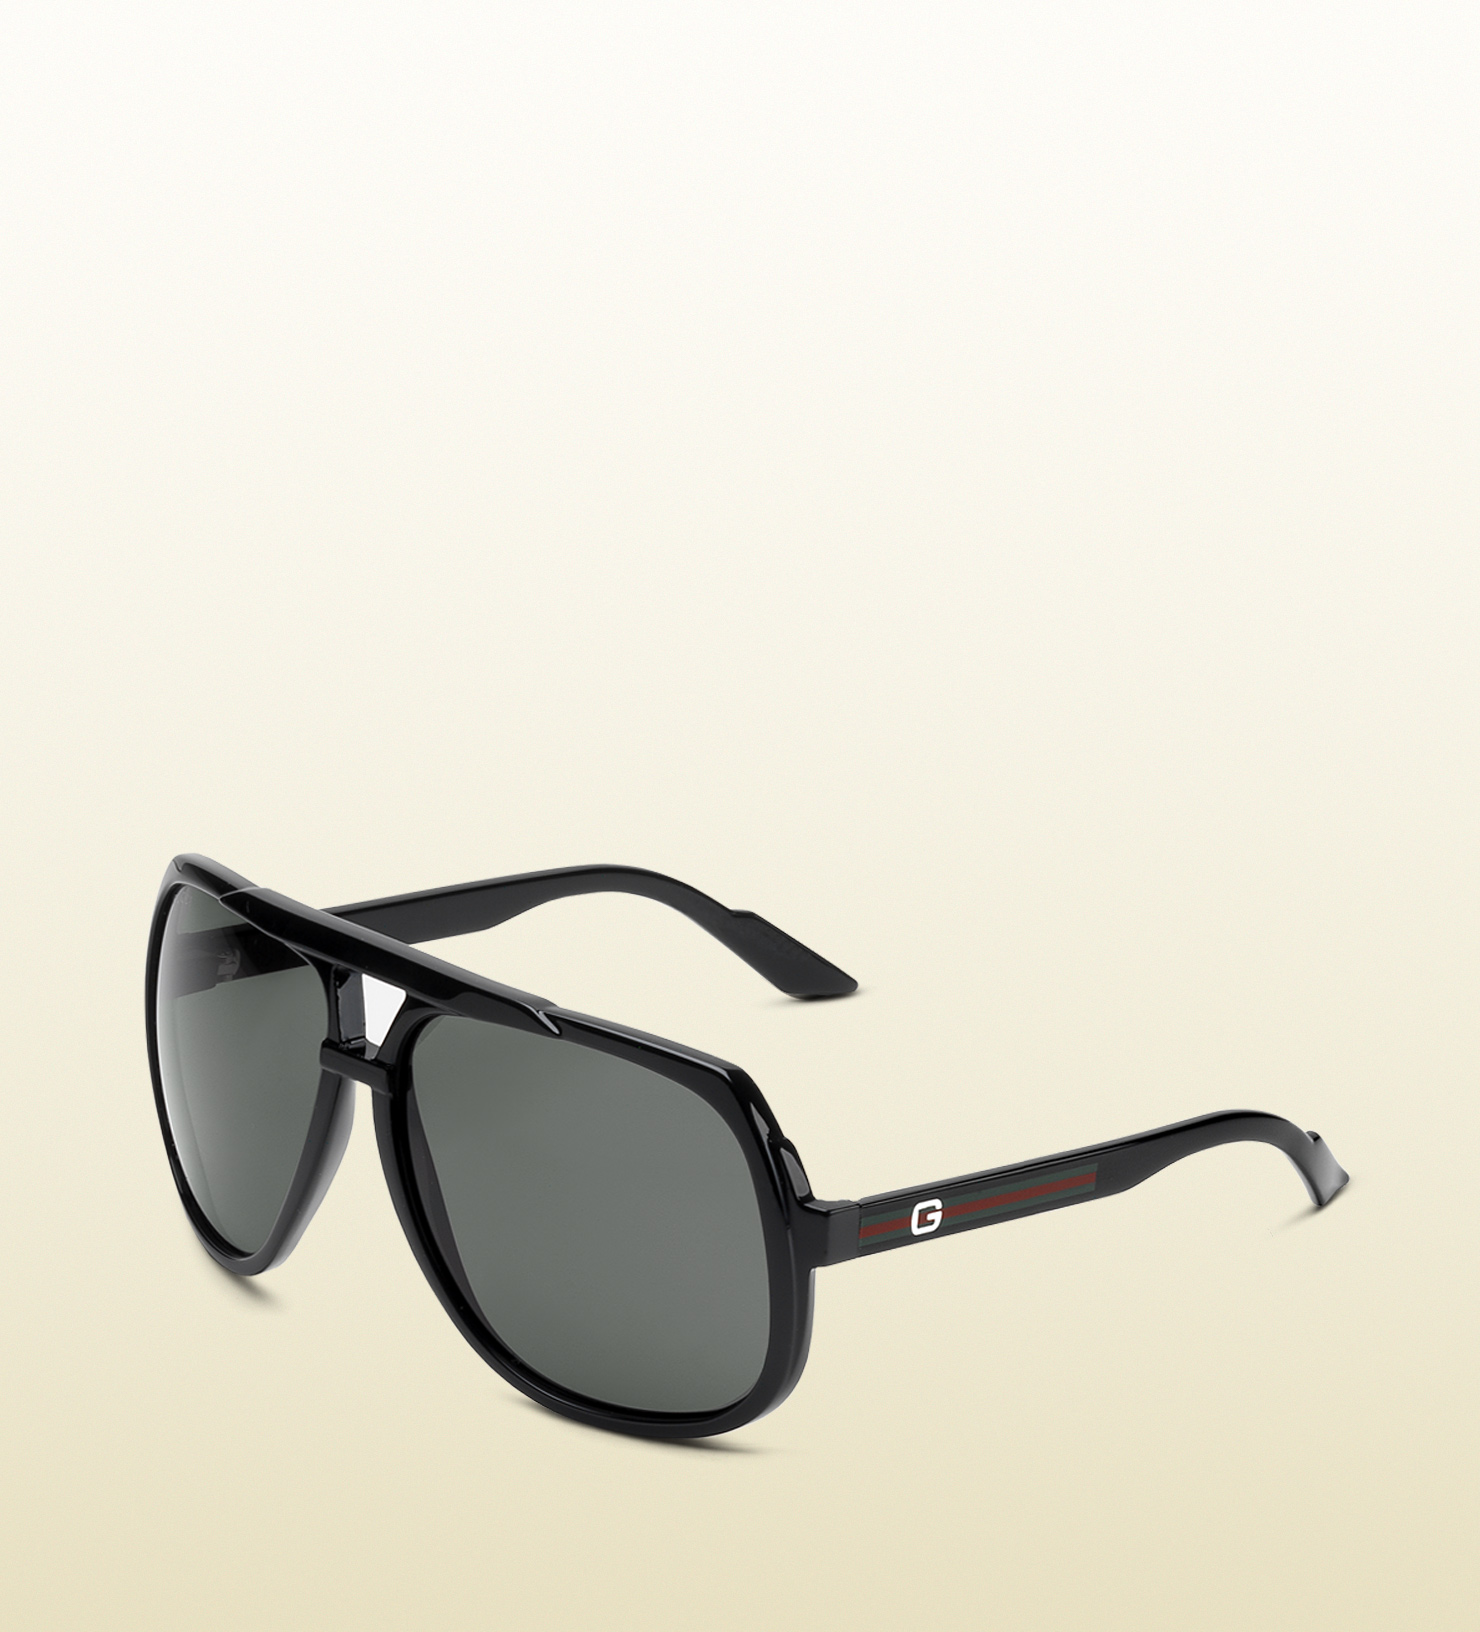 760cc26a7c2 Lyst - Gucci Large Aviator Sunglasses With G Detail And Signature ...